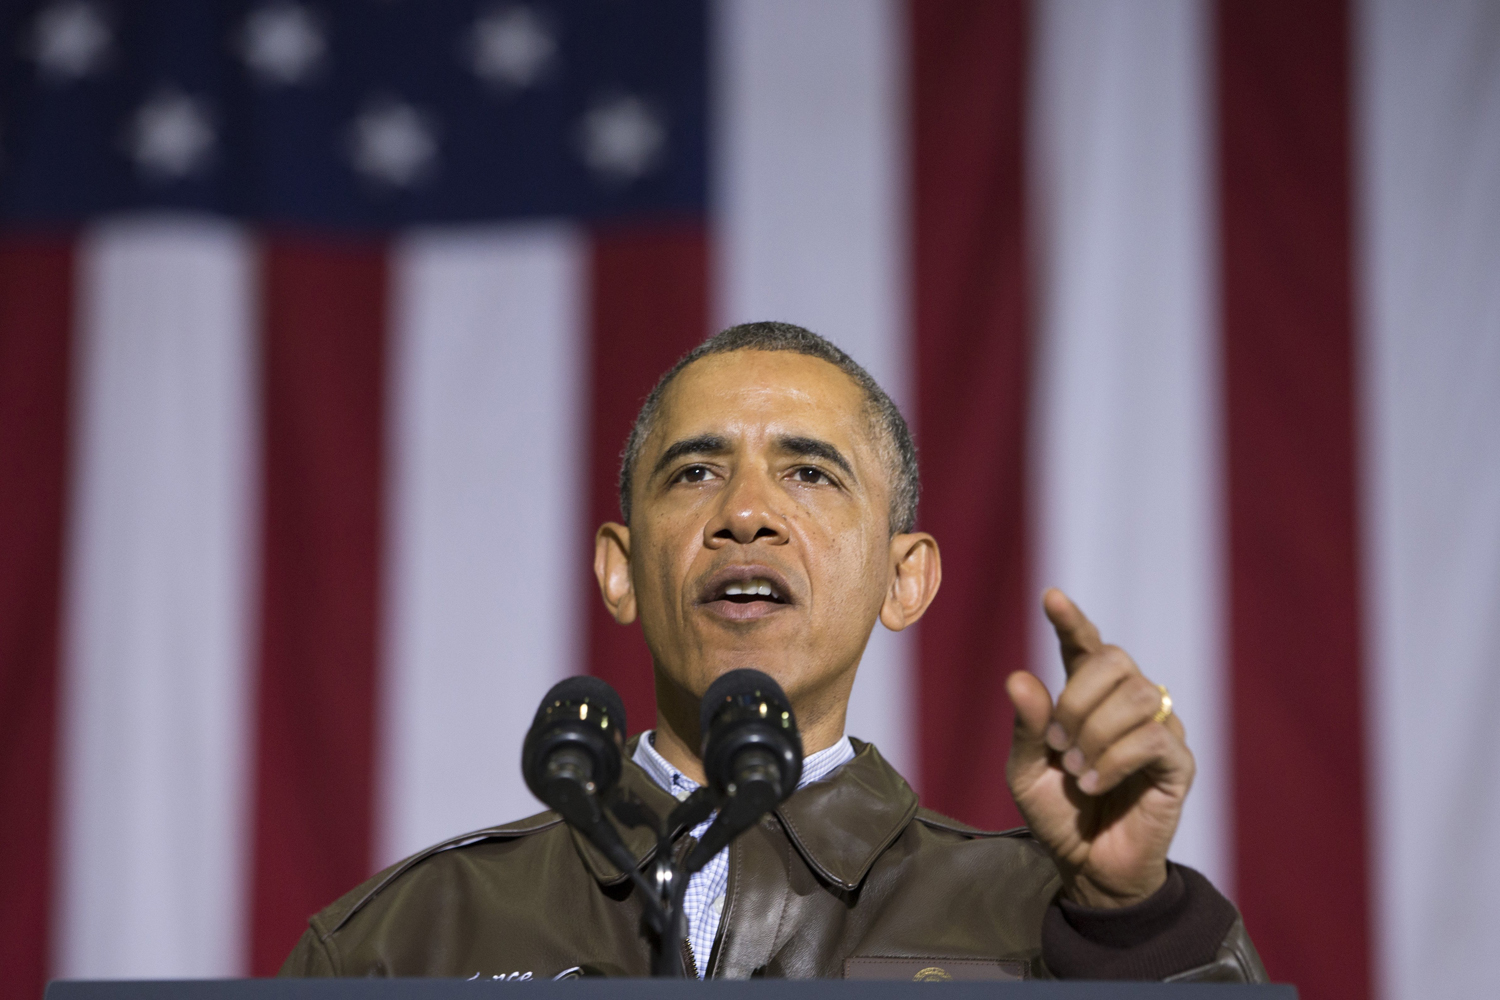 President Barack Obama gestures while speaking to troops at Bagram Air Field north of Kabul, Afghanistan, during an unannounced visit, May 25, 2014.